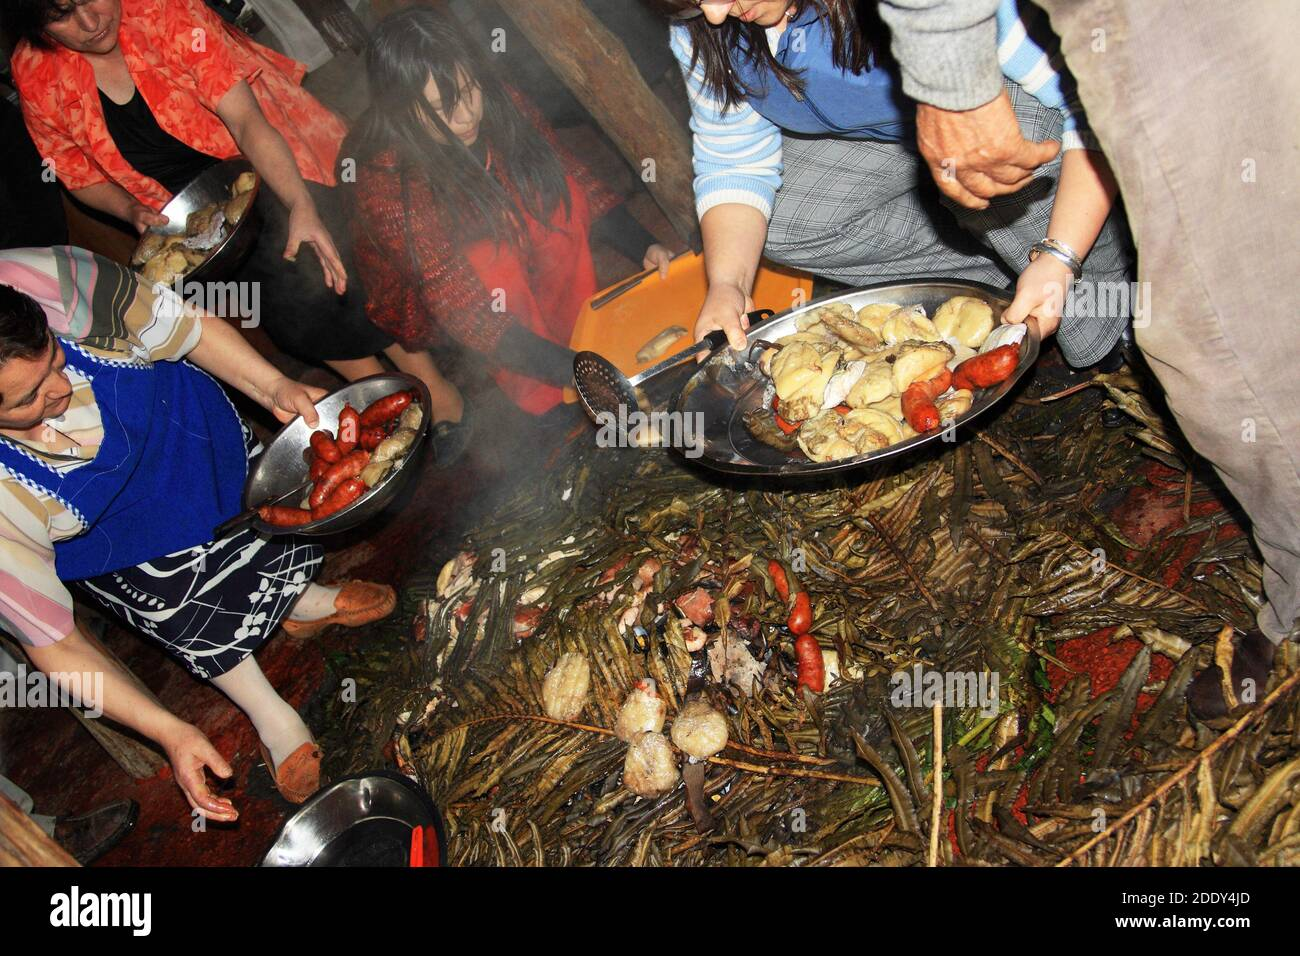 Preparing the ingredients of a curanto, a traditional meal cooked in a pit on the island of Chiloe, Chile Stock Photo